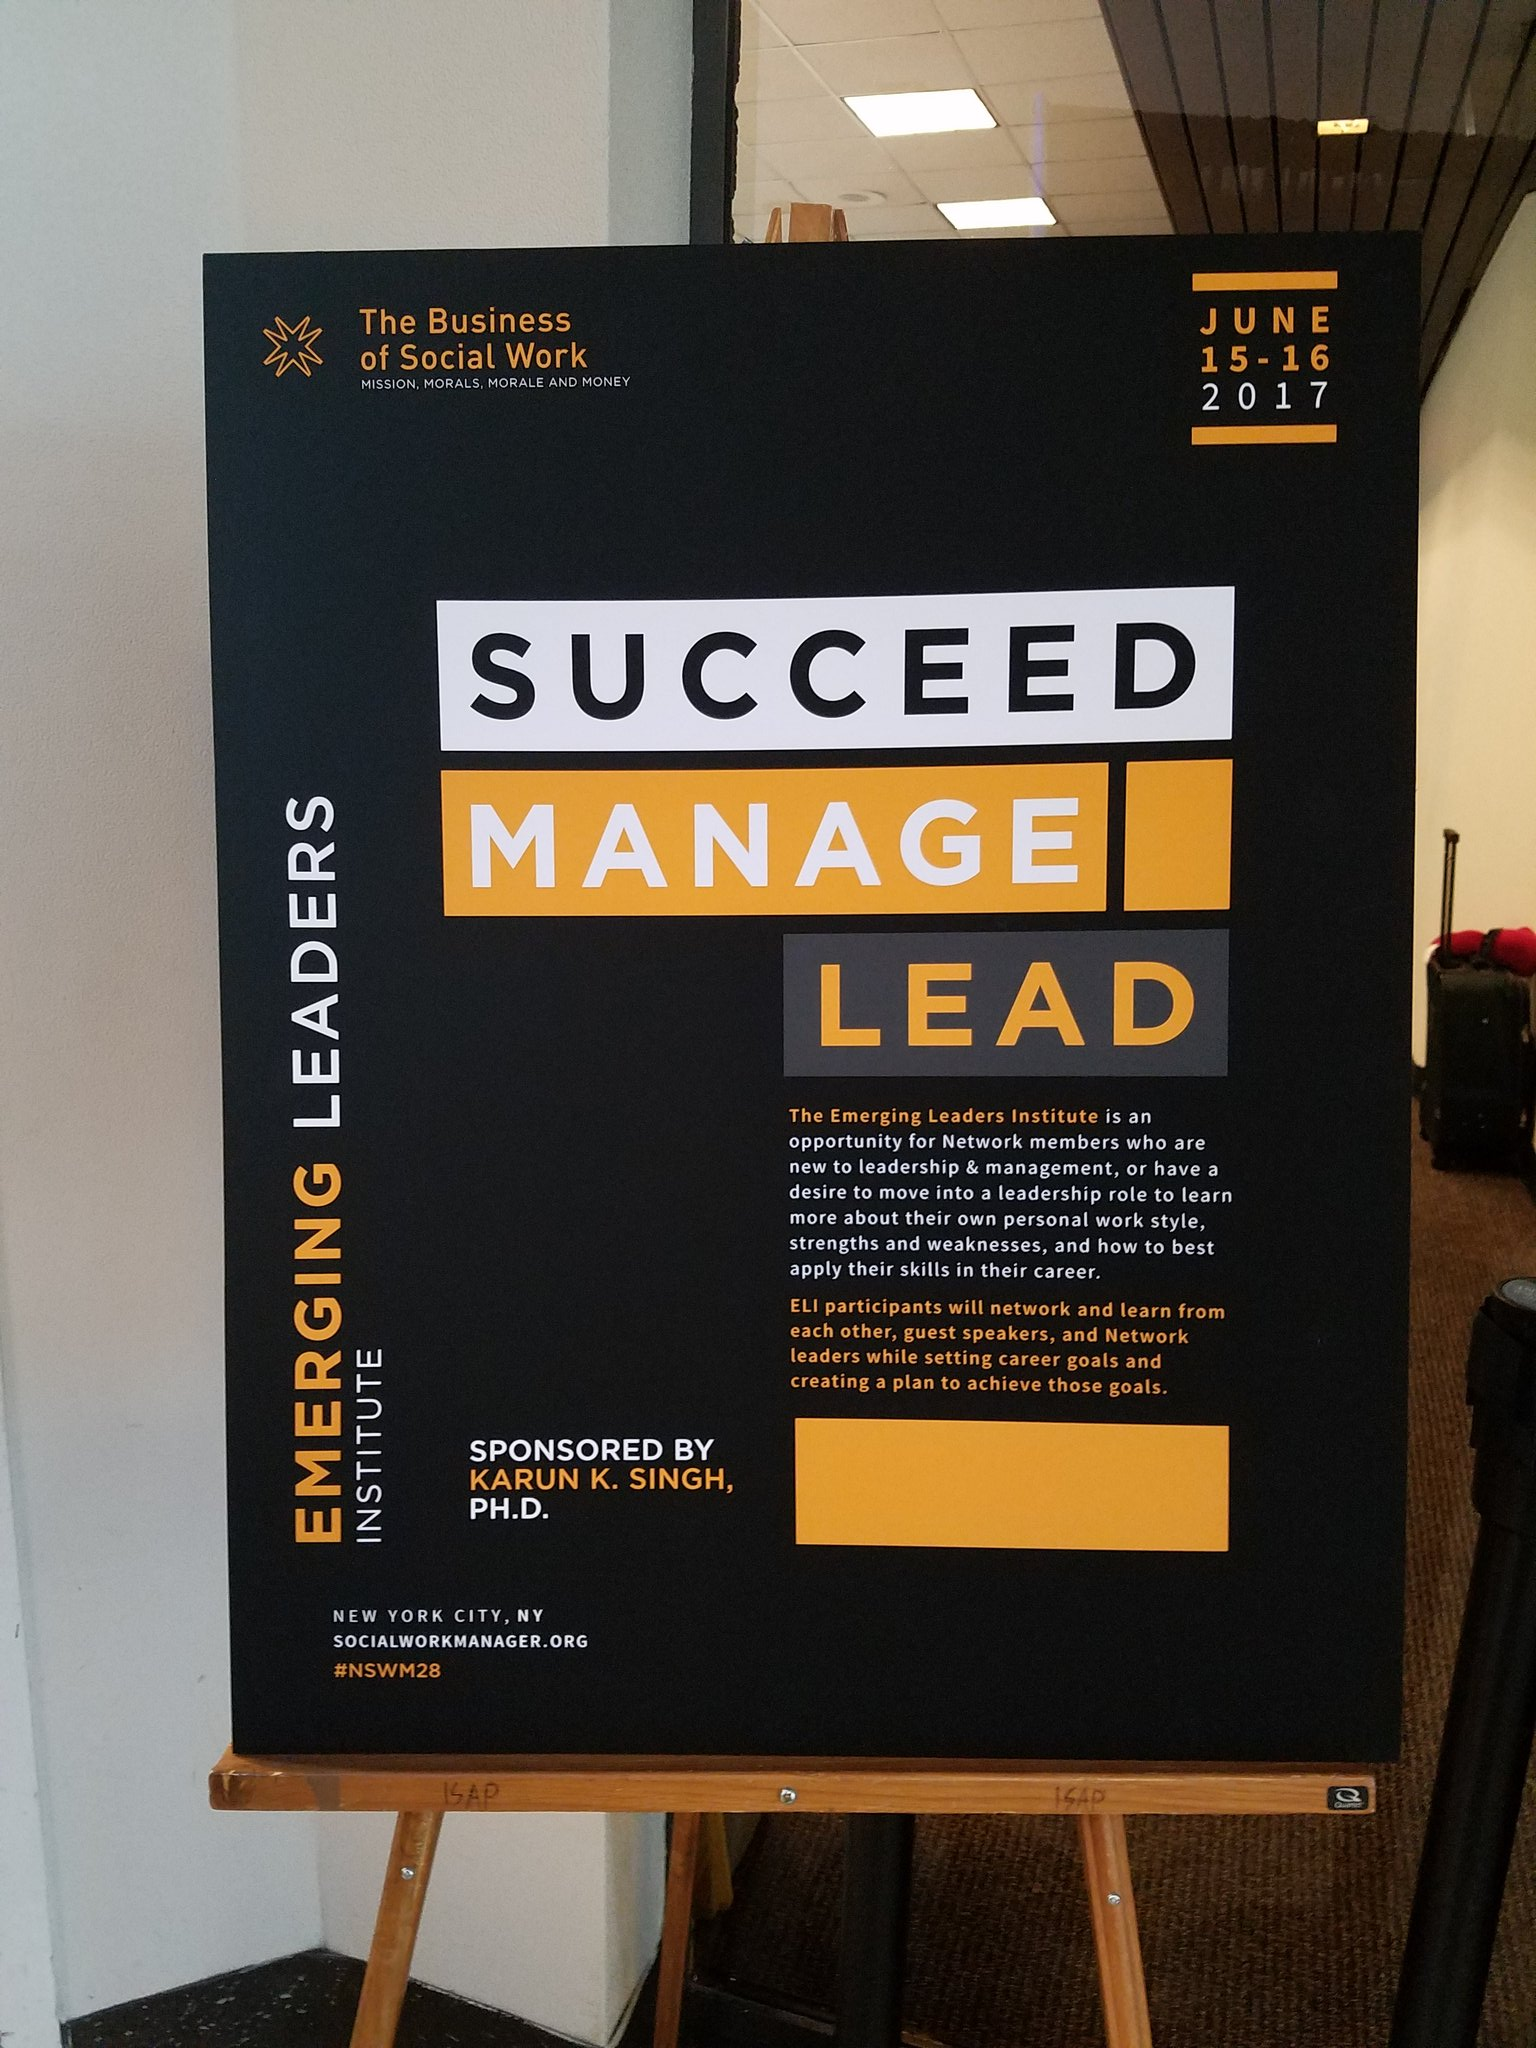 @TheNSWM Emerging #Leader Institute started this morning and is off to a great start! #nswm28 #management #Socialworkerslead https://t.co/rjjKvetsgk